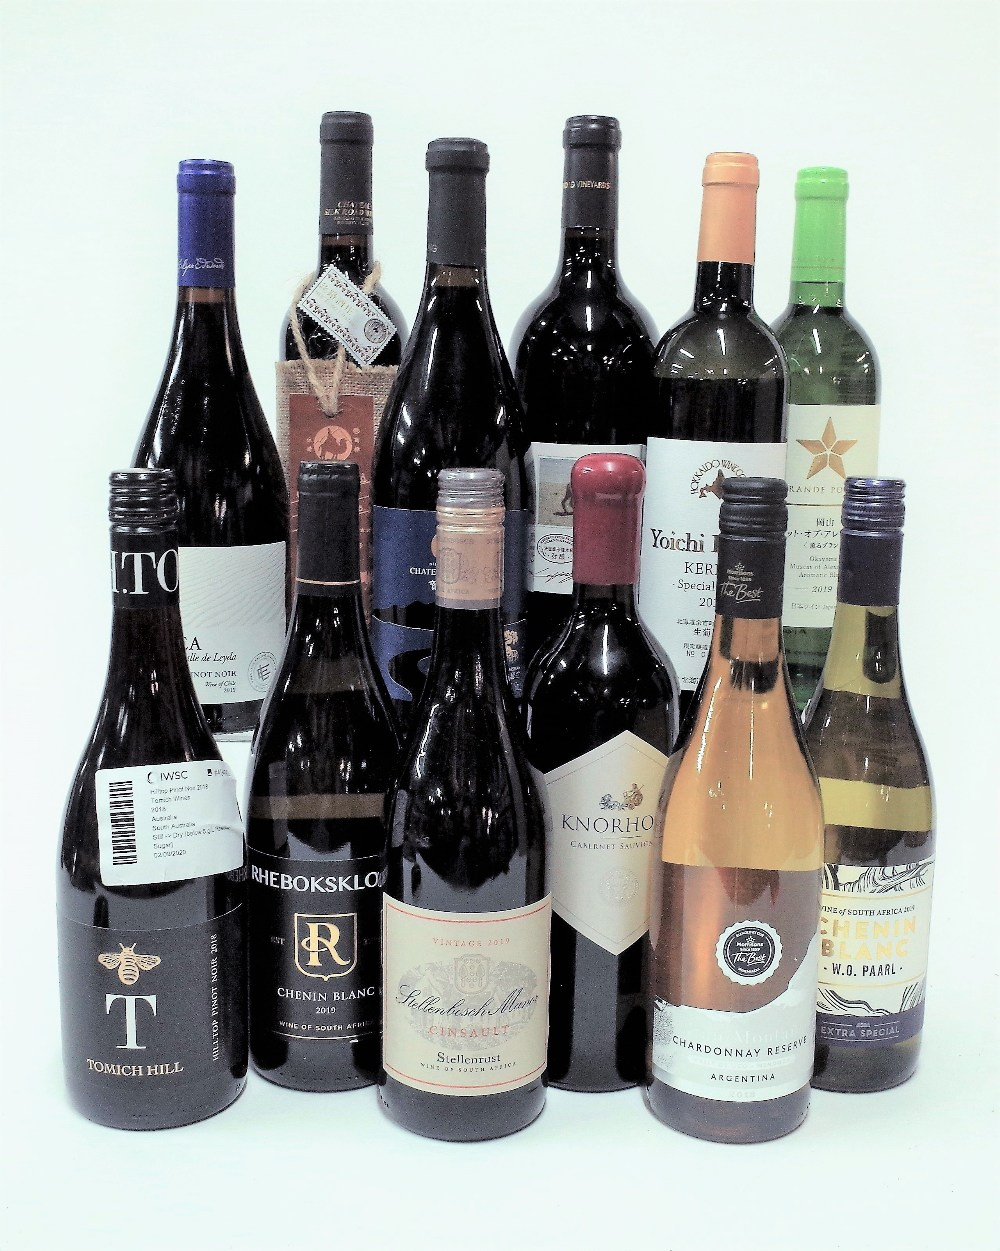 12 BOTTLES MIXED CASE WINES FROM CHINA, SOUTH AFRICA ETC. - Image 2 of 2